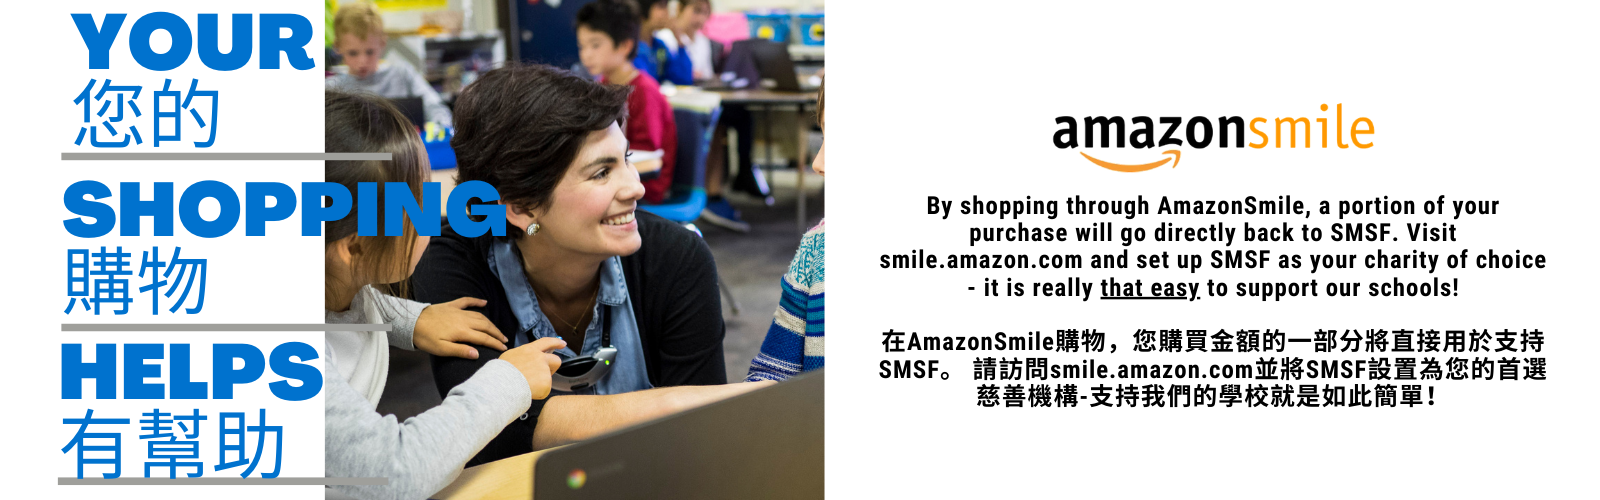 Support SMSF and Shop Through AmazonSmile!